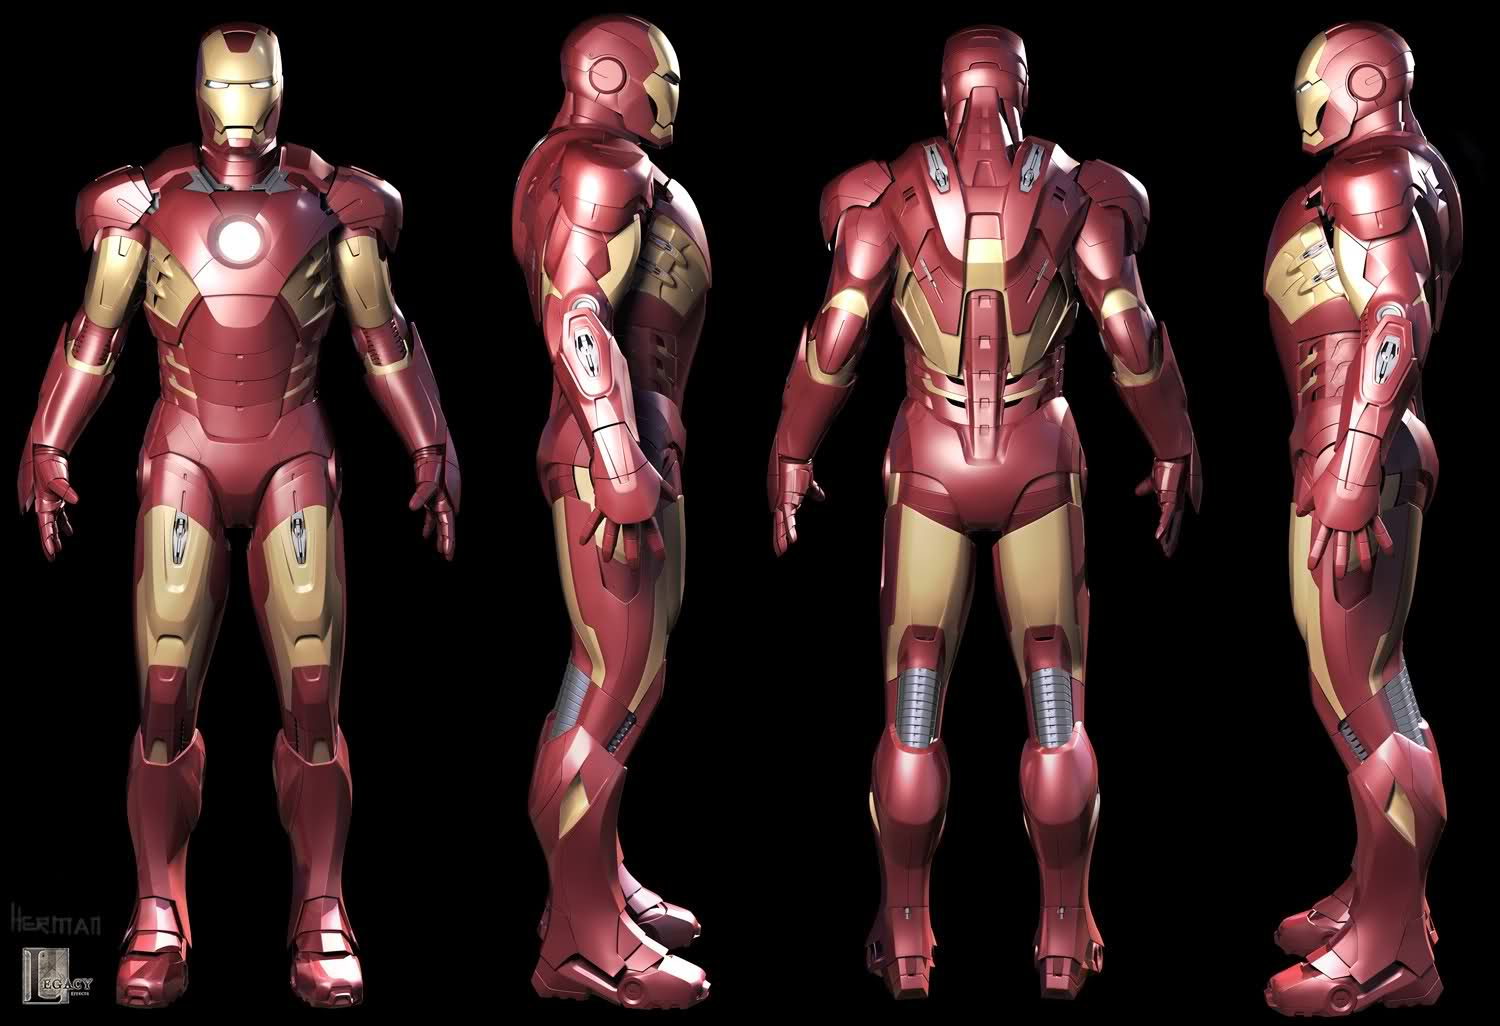 Iron Man Mark VII Armored Suit 3D Model by Scarlighter on DeviantArt